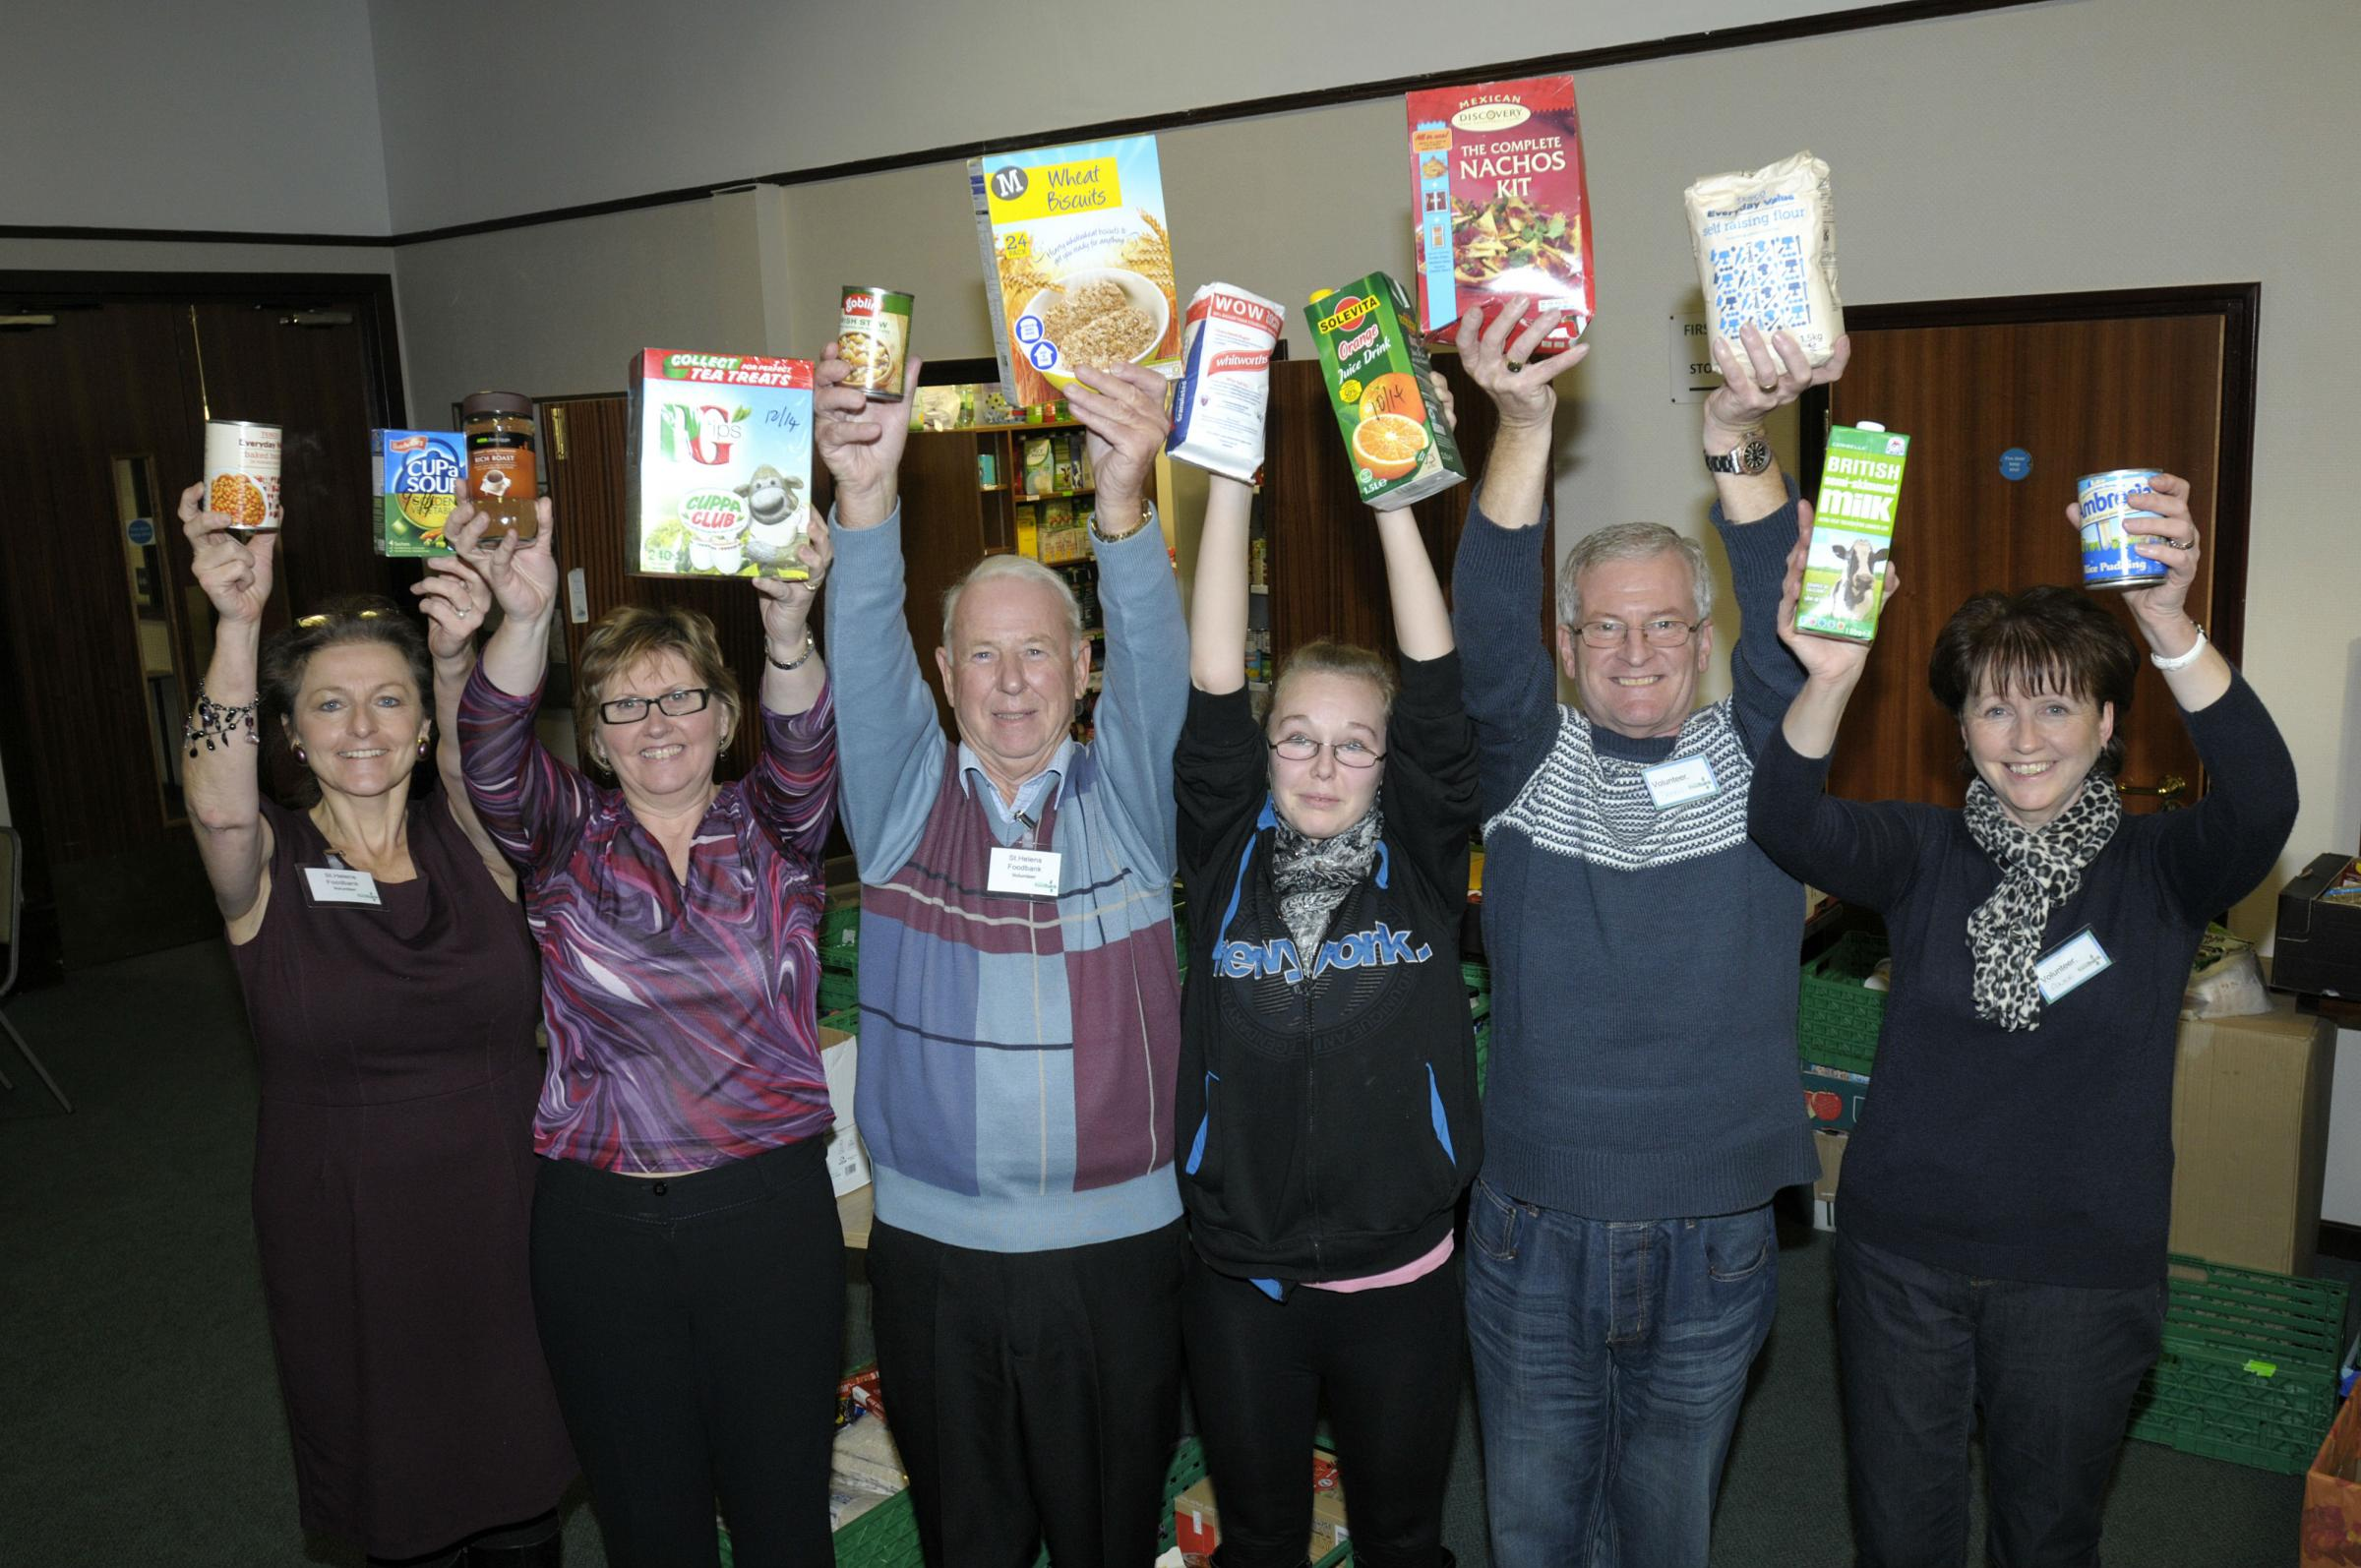 Food bank crews marked St Helens first anniversary this winter... and their supplies are being stocked by library users